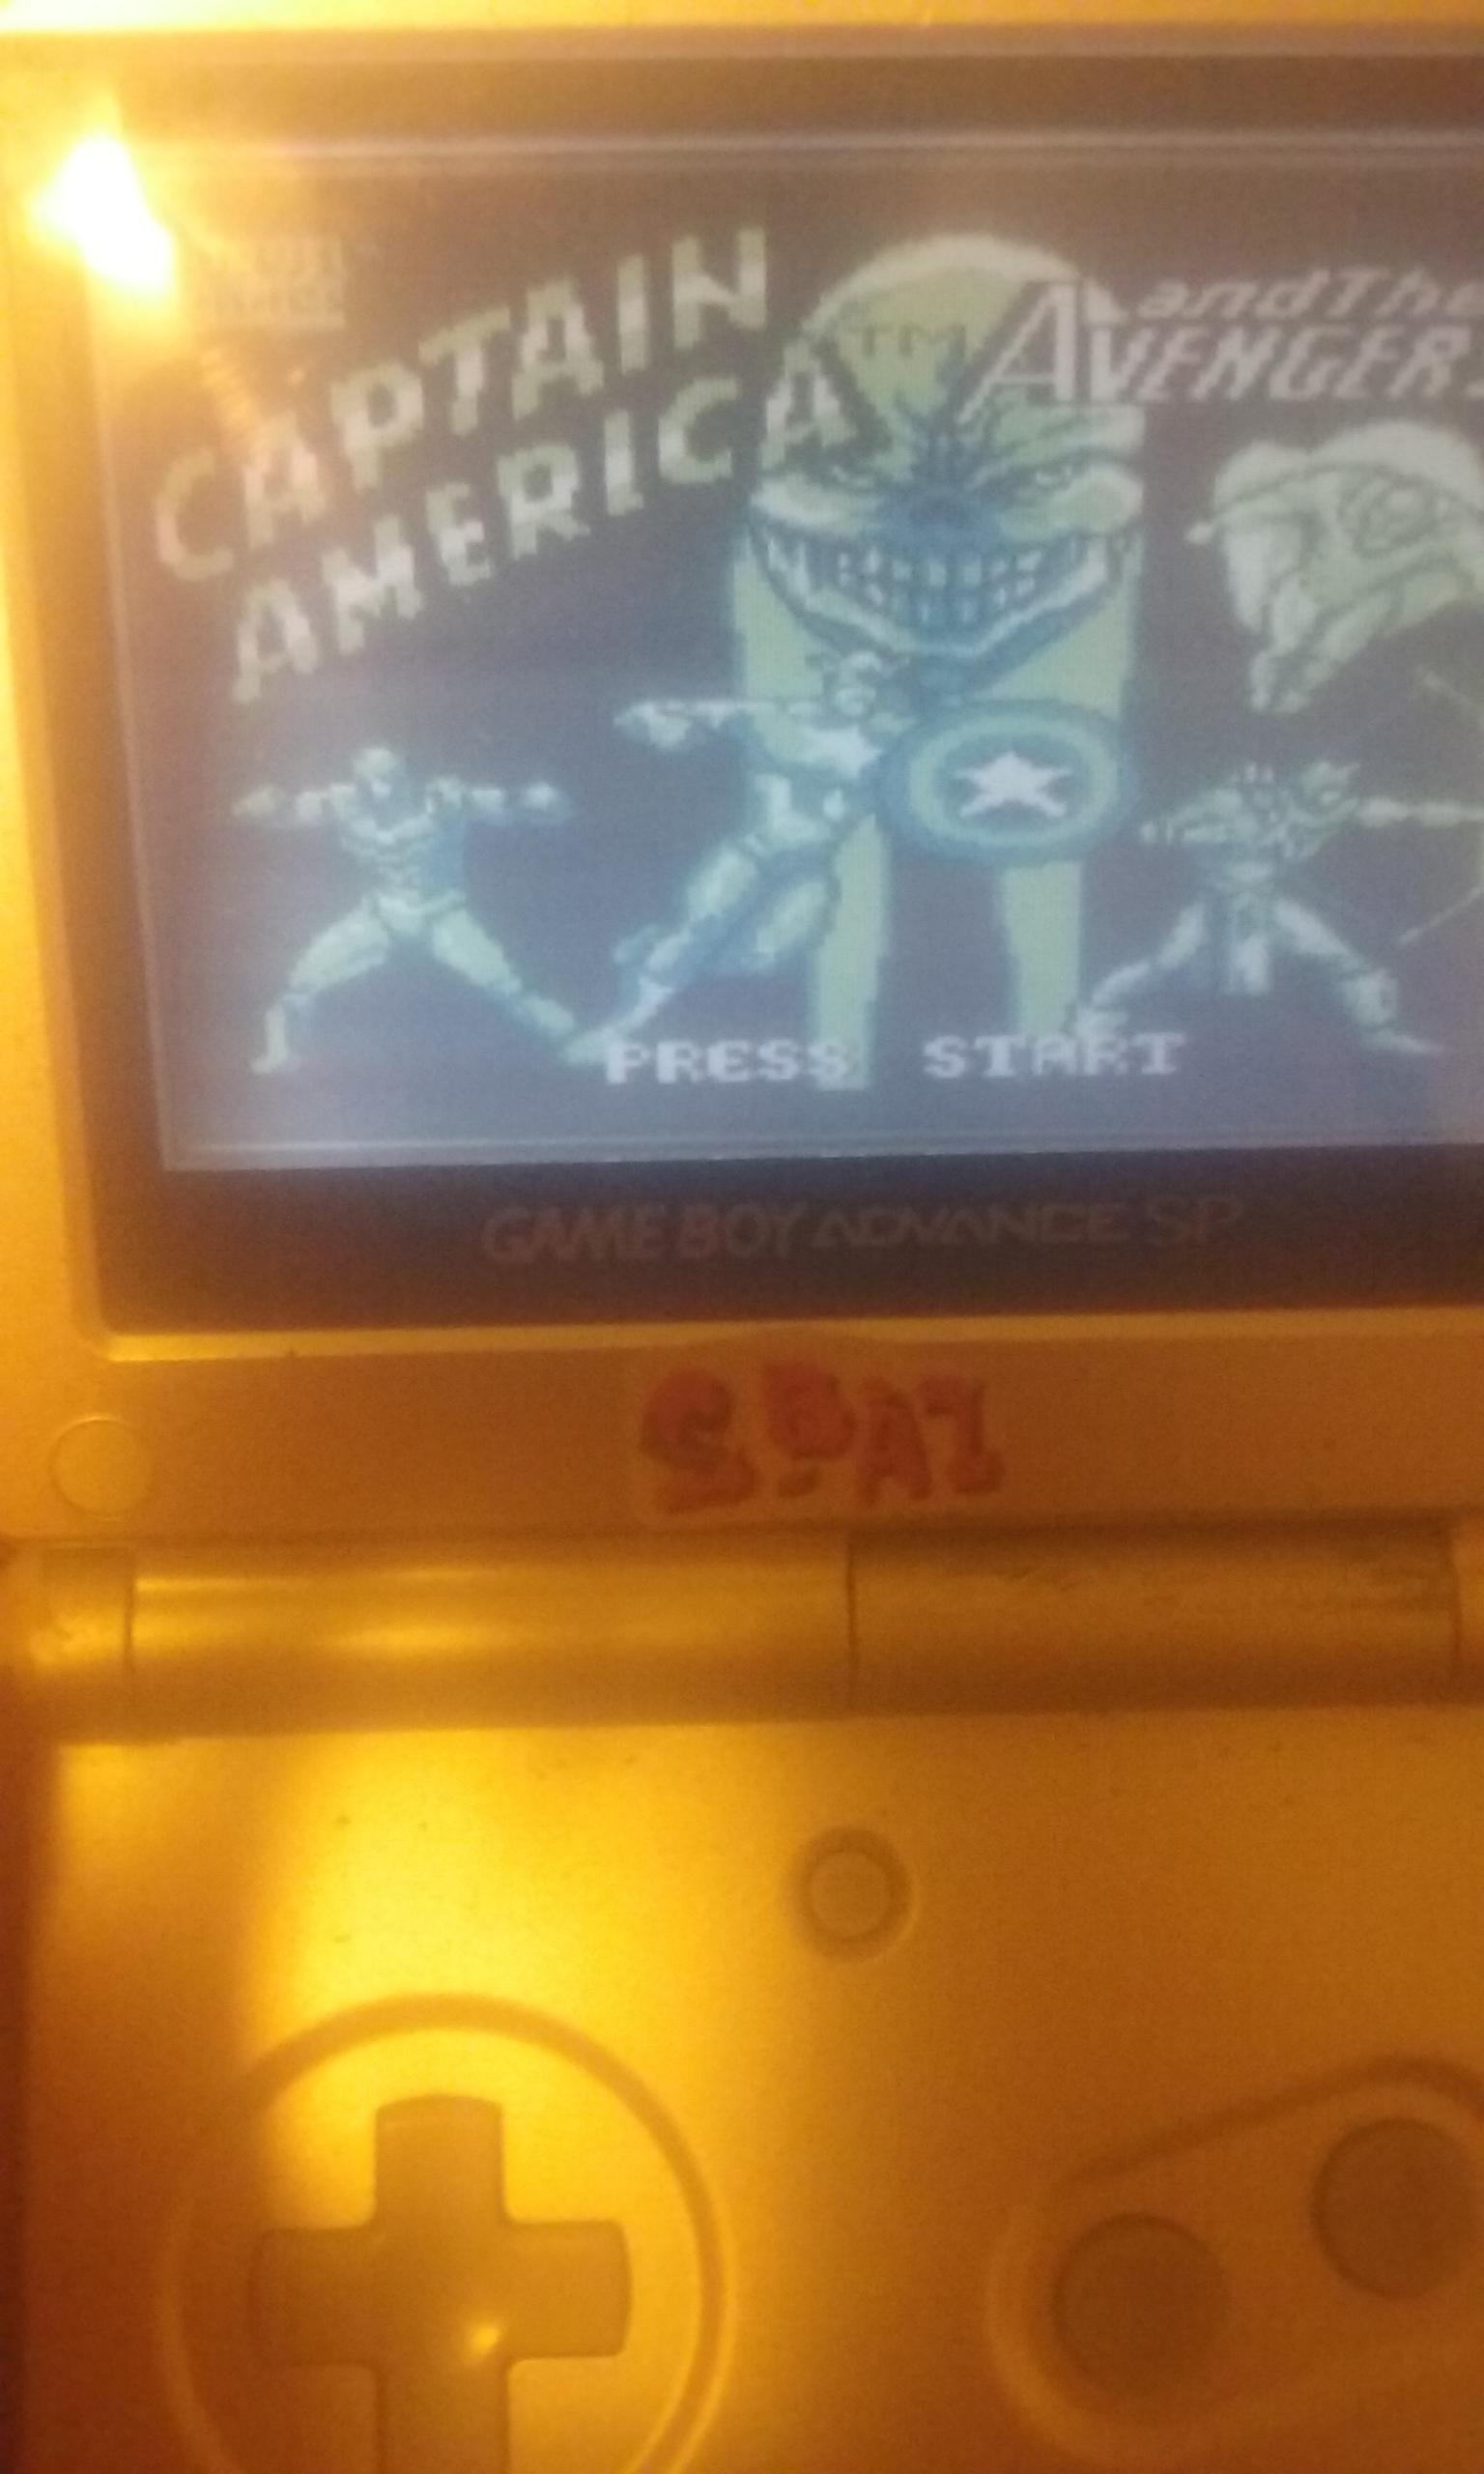 S.BAZ: Captain America and The Avengers (Game Boy) 7,575 points on 2021-02-27 14:48:34